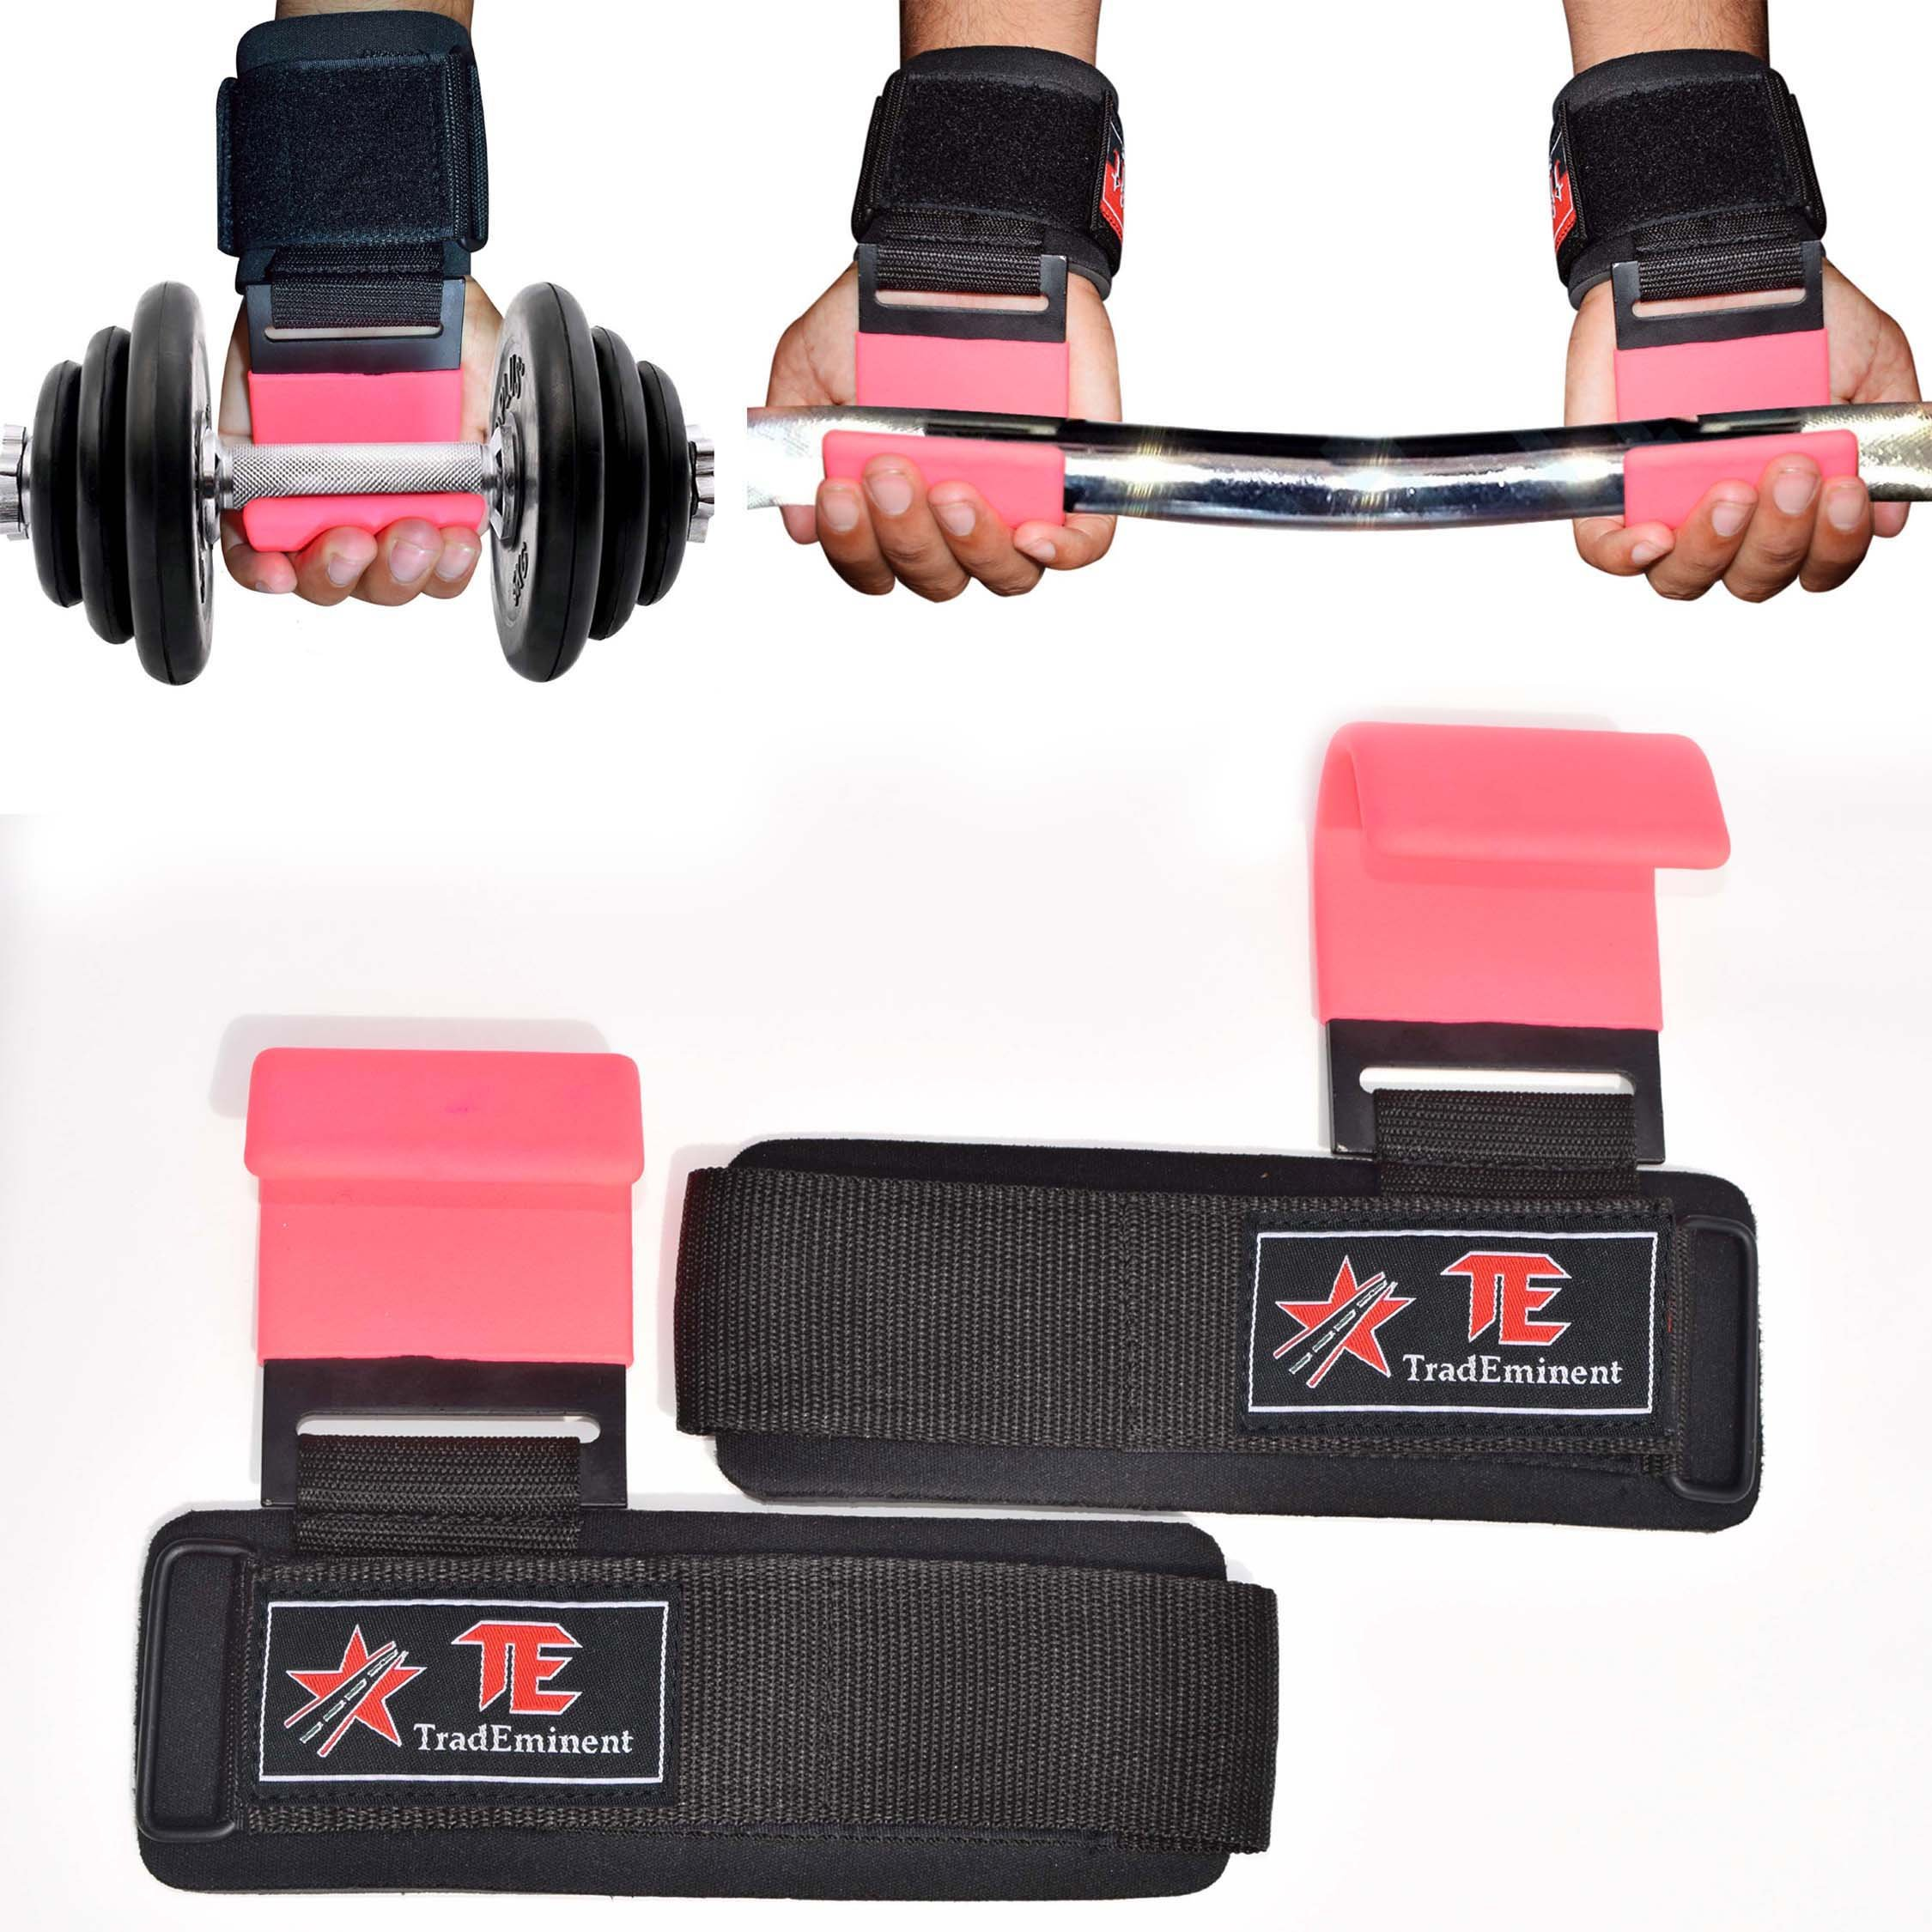 Lifting Wrist Support Weight Gym Straps Bar Wraps Grips Training Hook Pink New